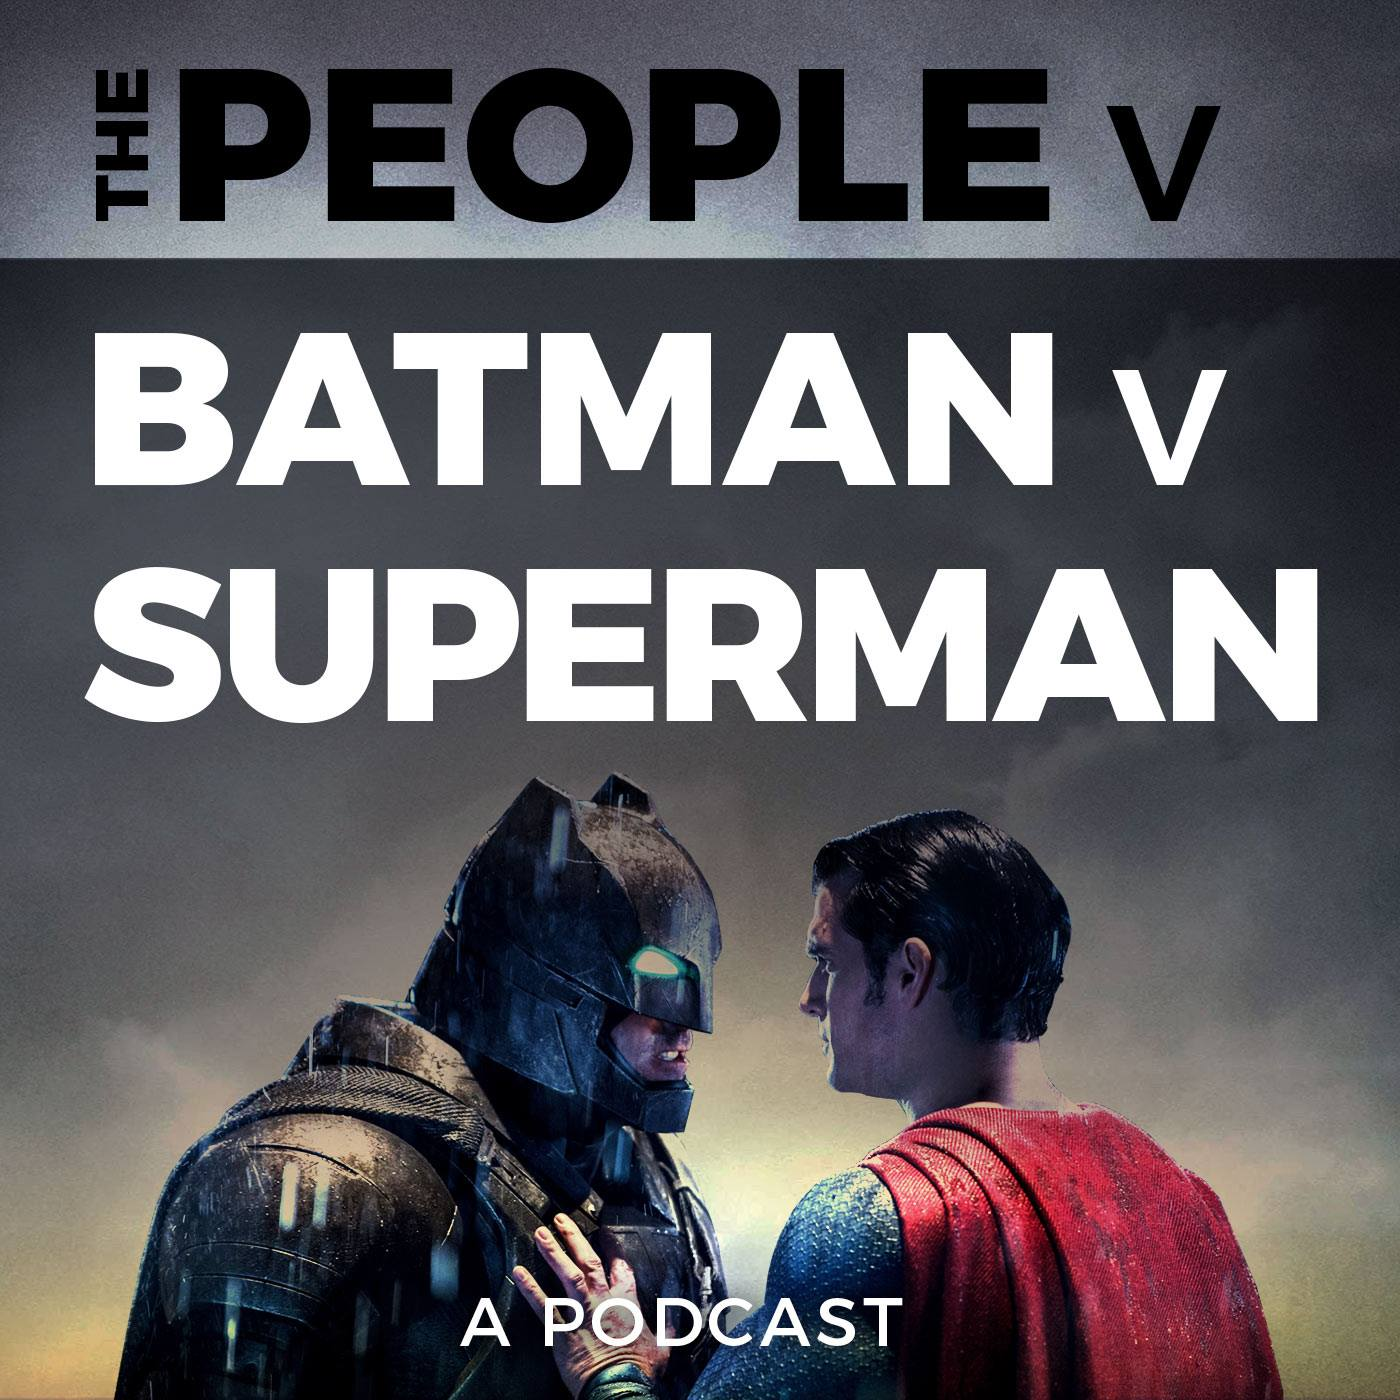 The People v Batman v Superman - Two huge DC Comics fans, Chris Ayers and Dennis Cooper, discuss, analyze and criticize Batman v Superman scene by scene on a weekly podcast. We also feature guests with various viewpoints, including comic book creators Brian Augustyn, Jamal Igle and Chris Sims.thepeoplevbatmanvsuperman.libsyn.com